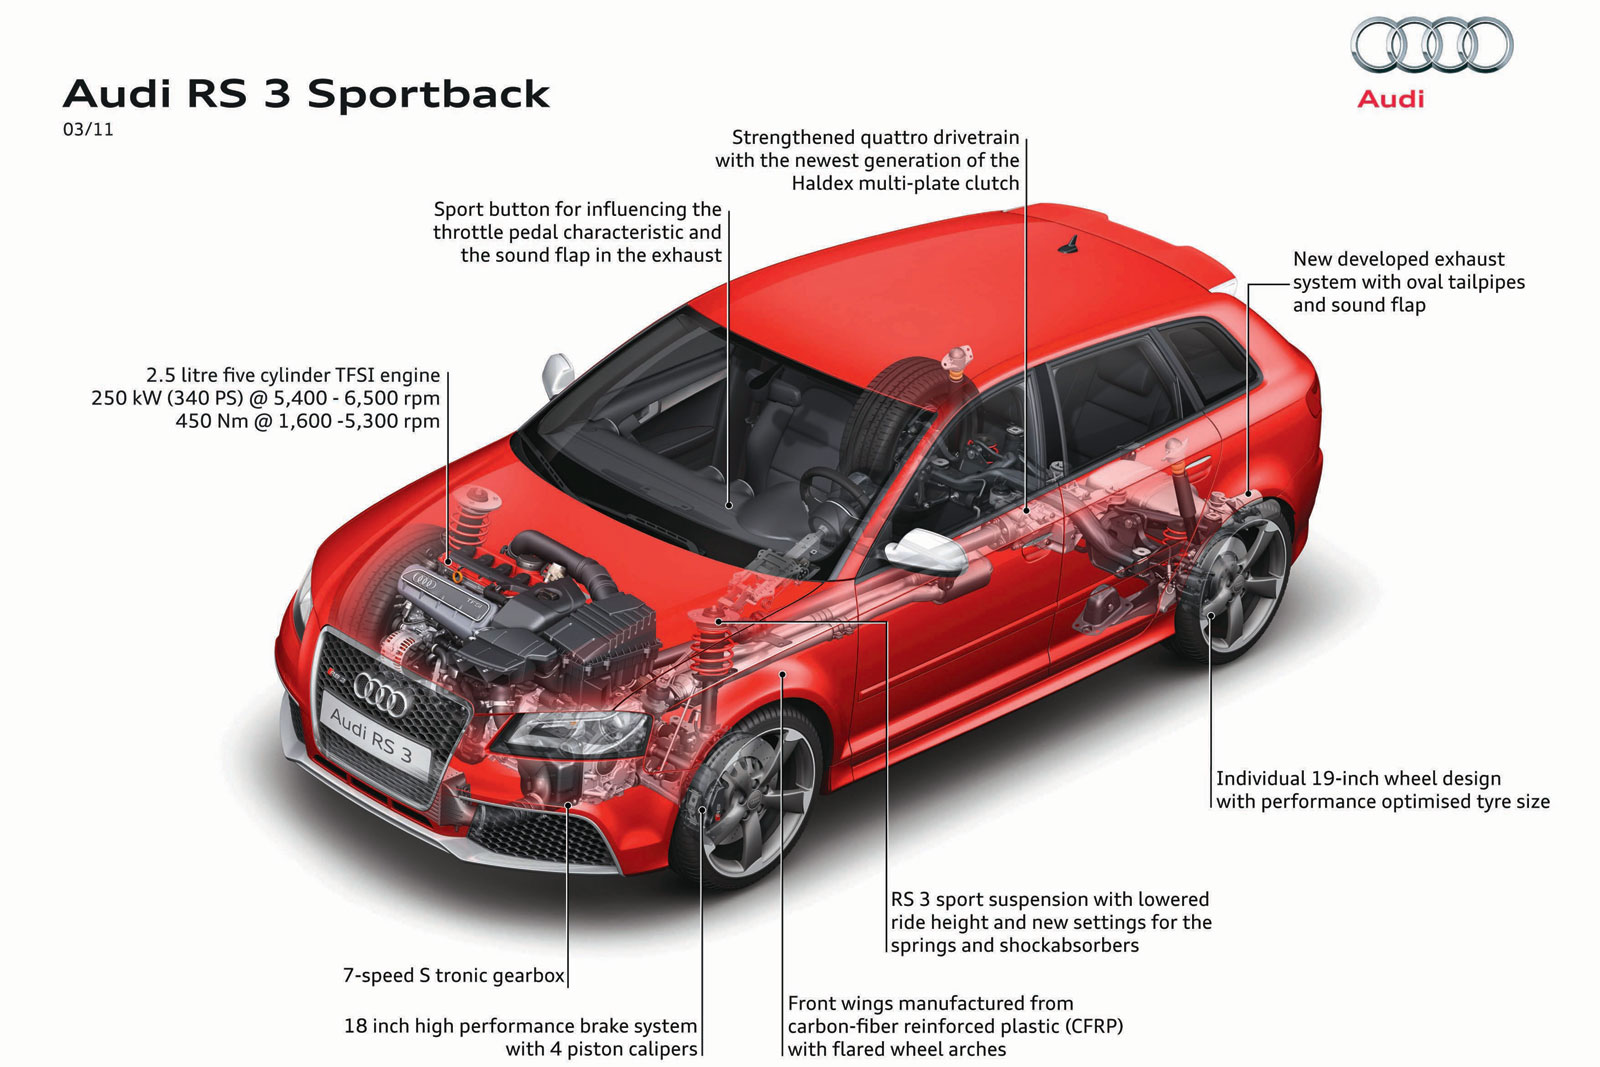 2012 Audi RS3 Sportback | Top Speed